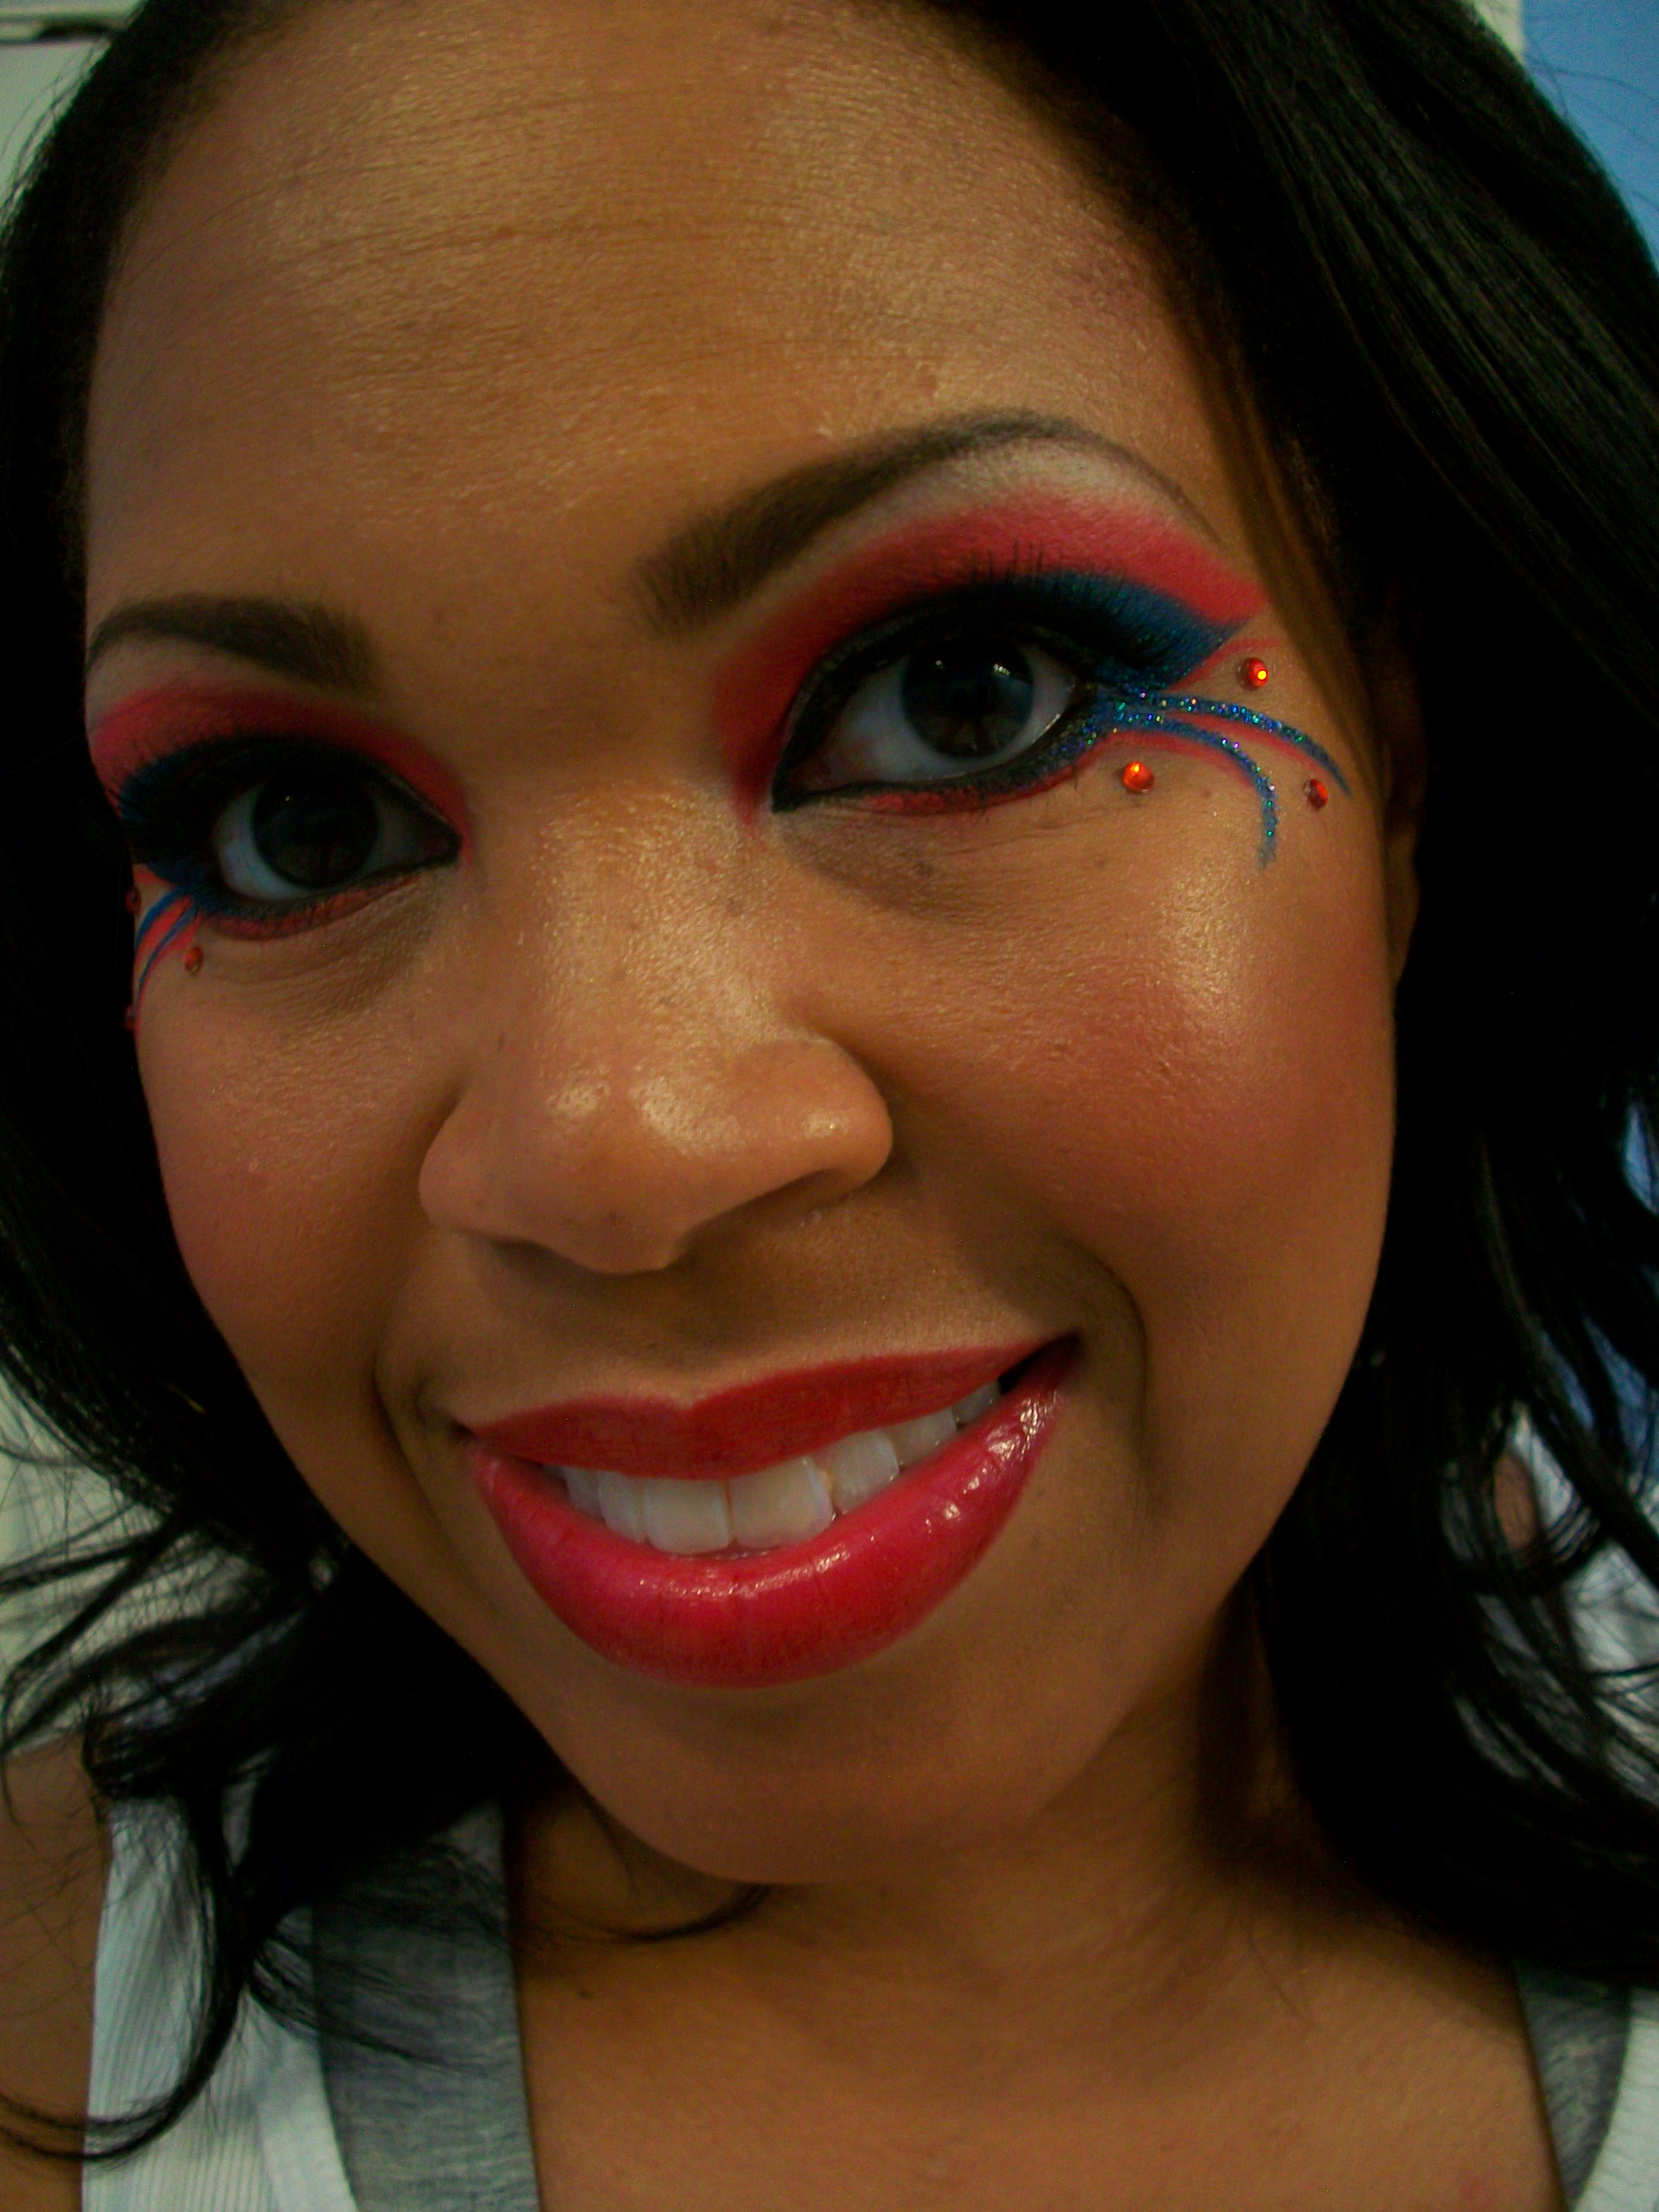 Makeup tutorial 4th of july inspired eyes beauty chameleon 1000593 baditri Image collections